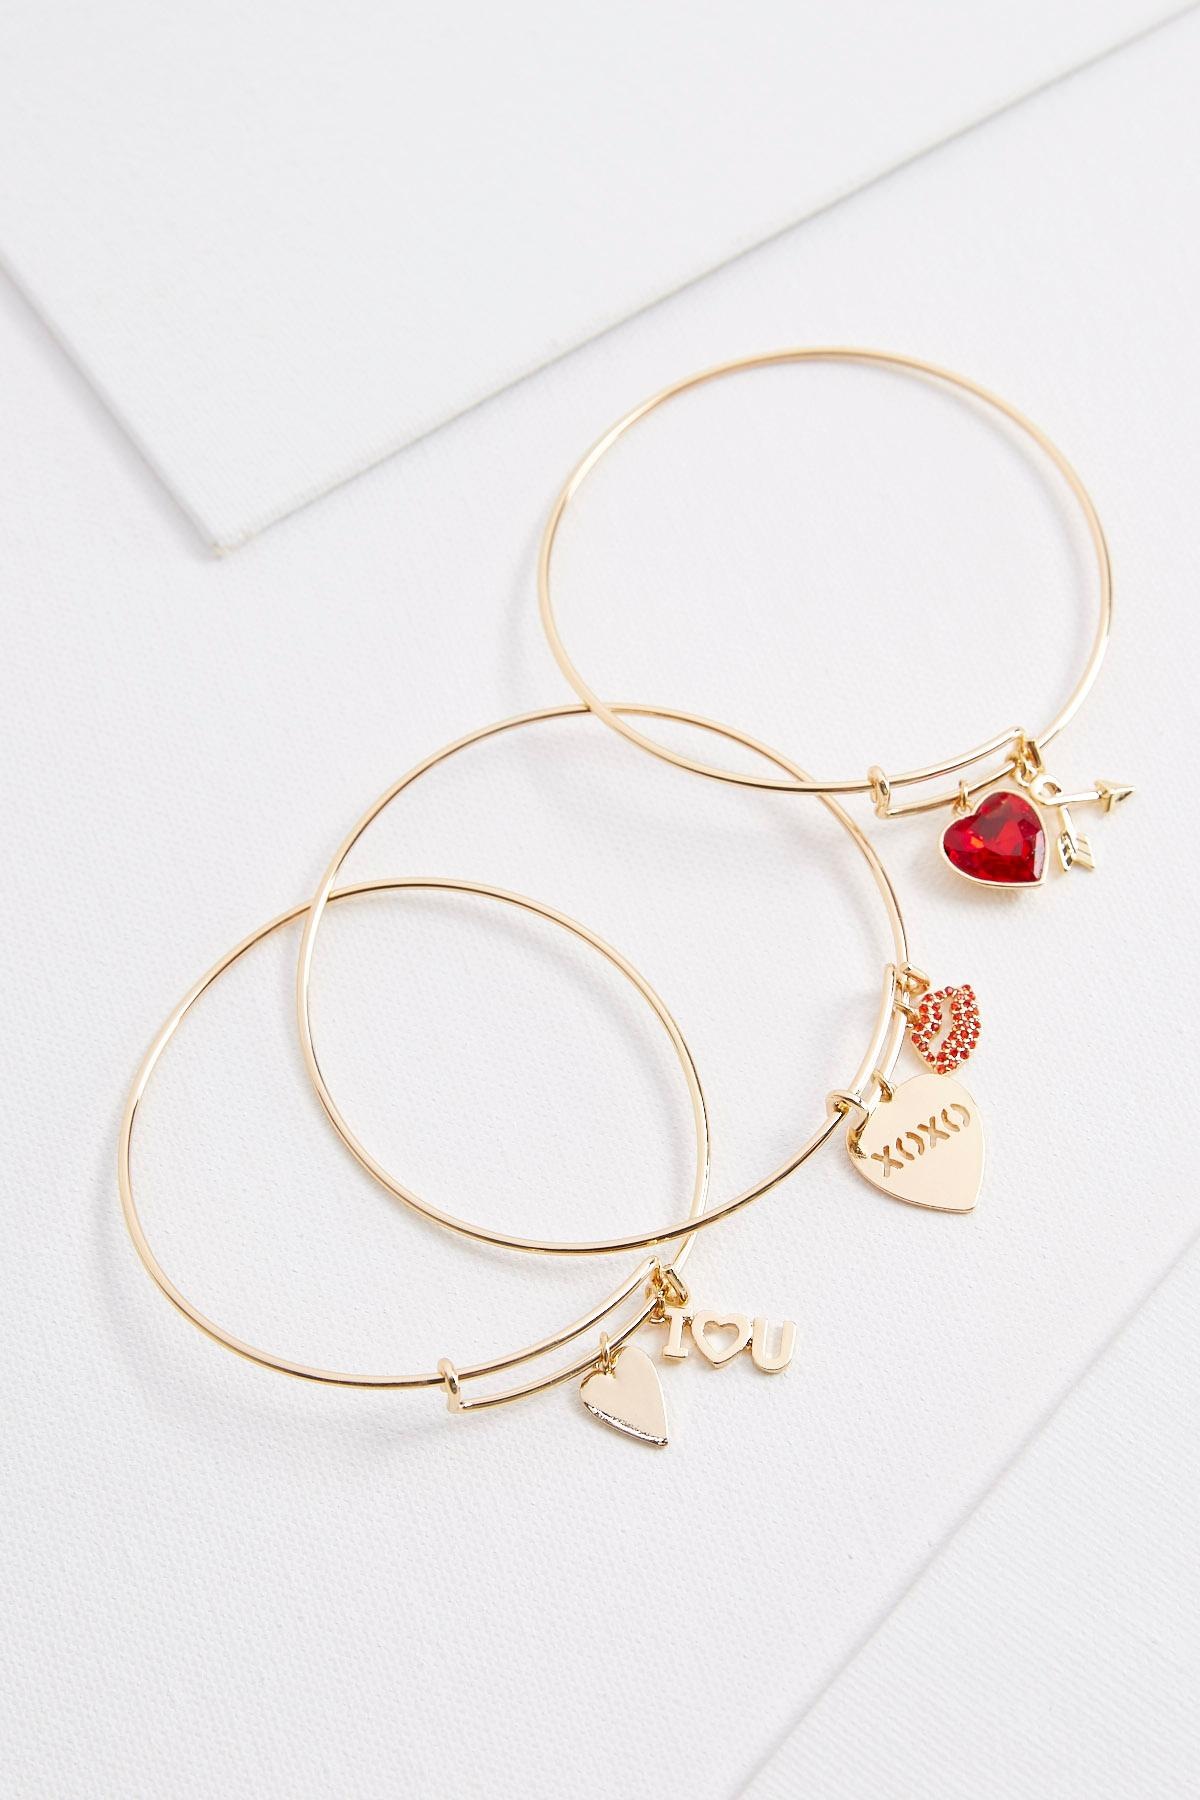 Heart Charm Bangle Set